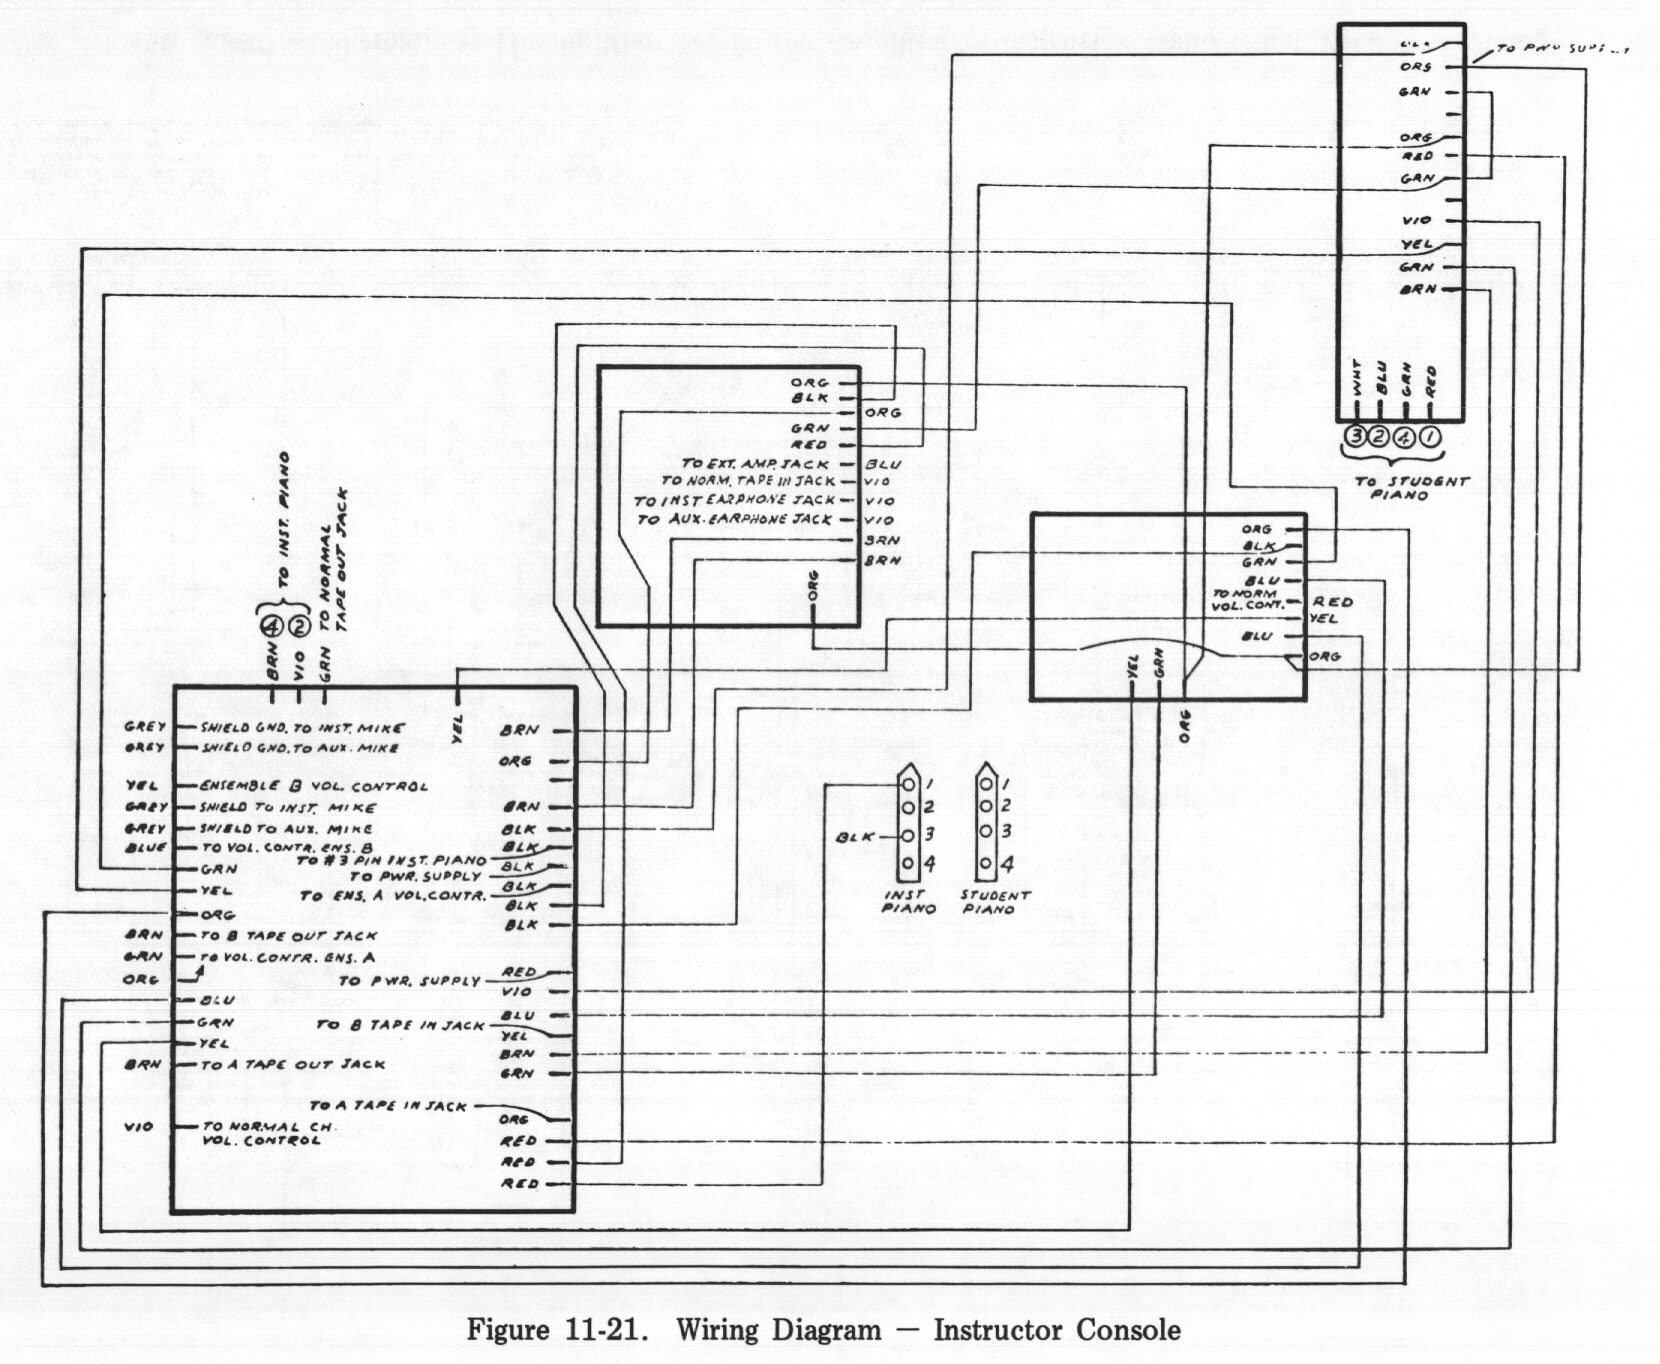 Chapter 11 Diagrams Schematics And Pictorials 1968 Satellite Wiring Diagram 21